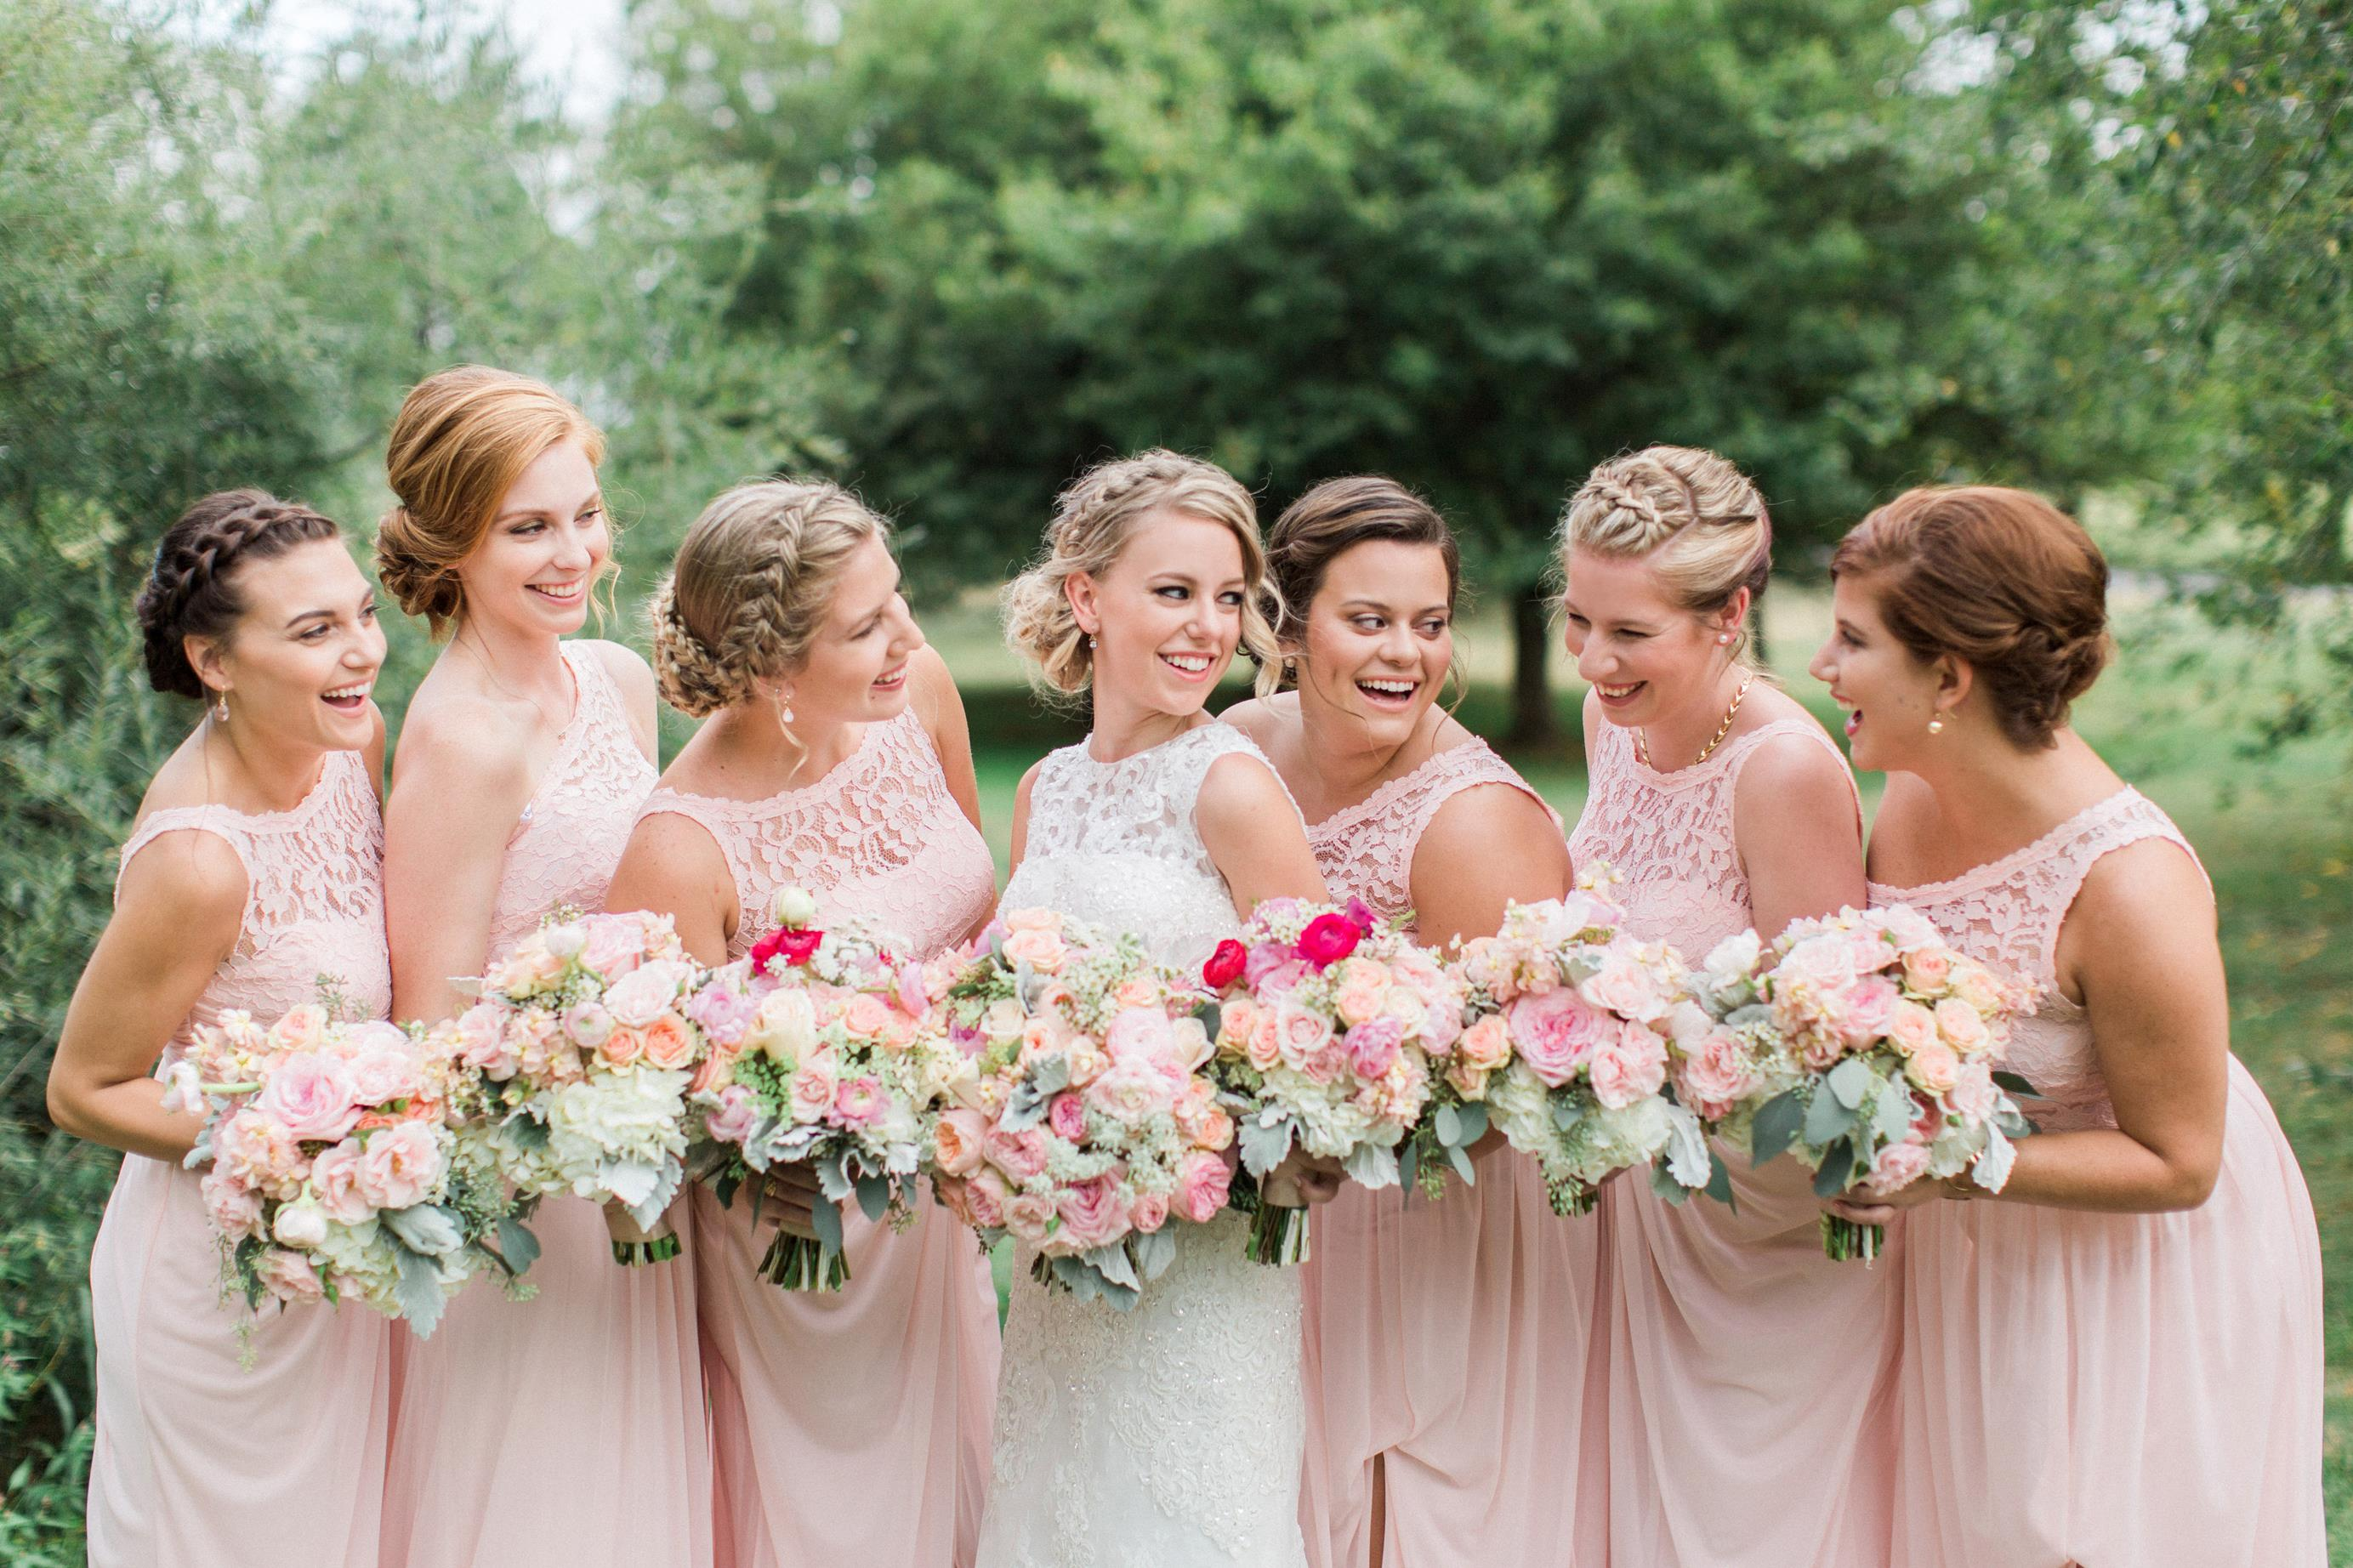 Bridesmaid Dresses For Rustic Wedding 69 Simple The following D C